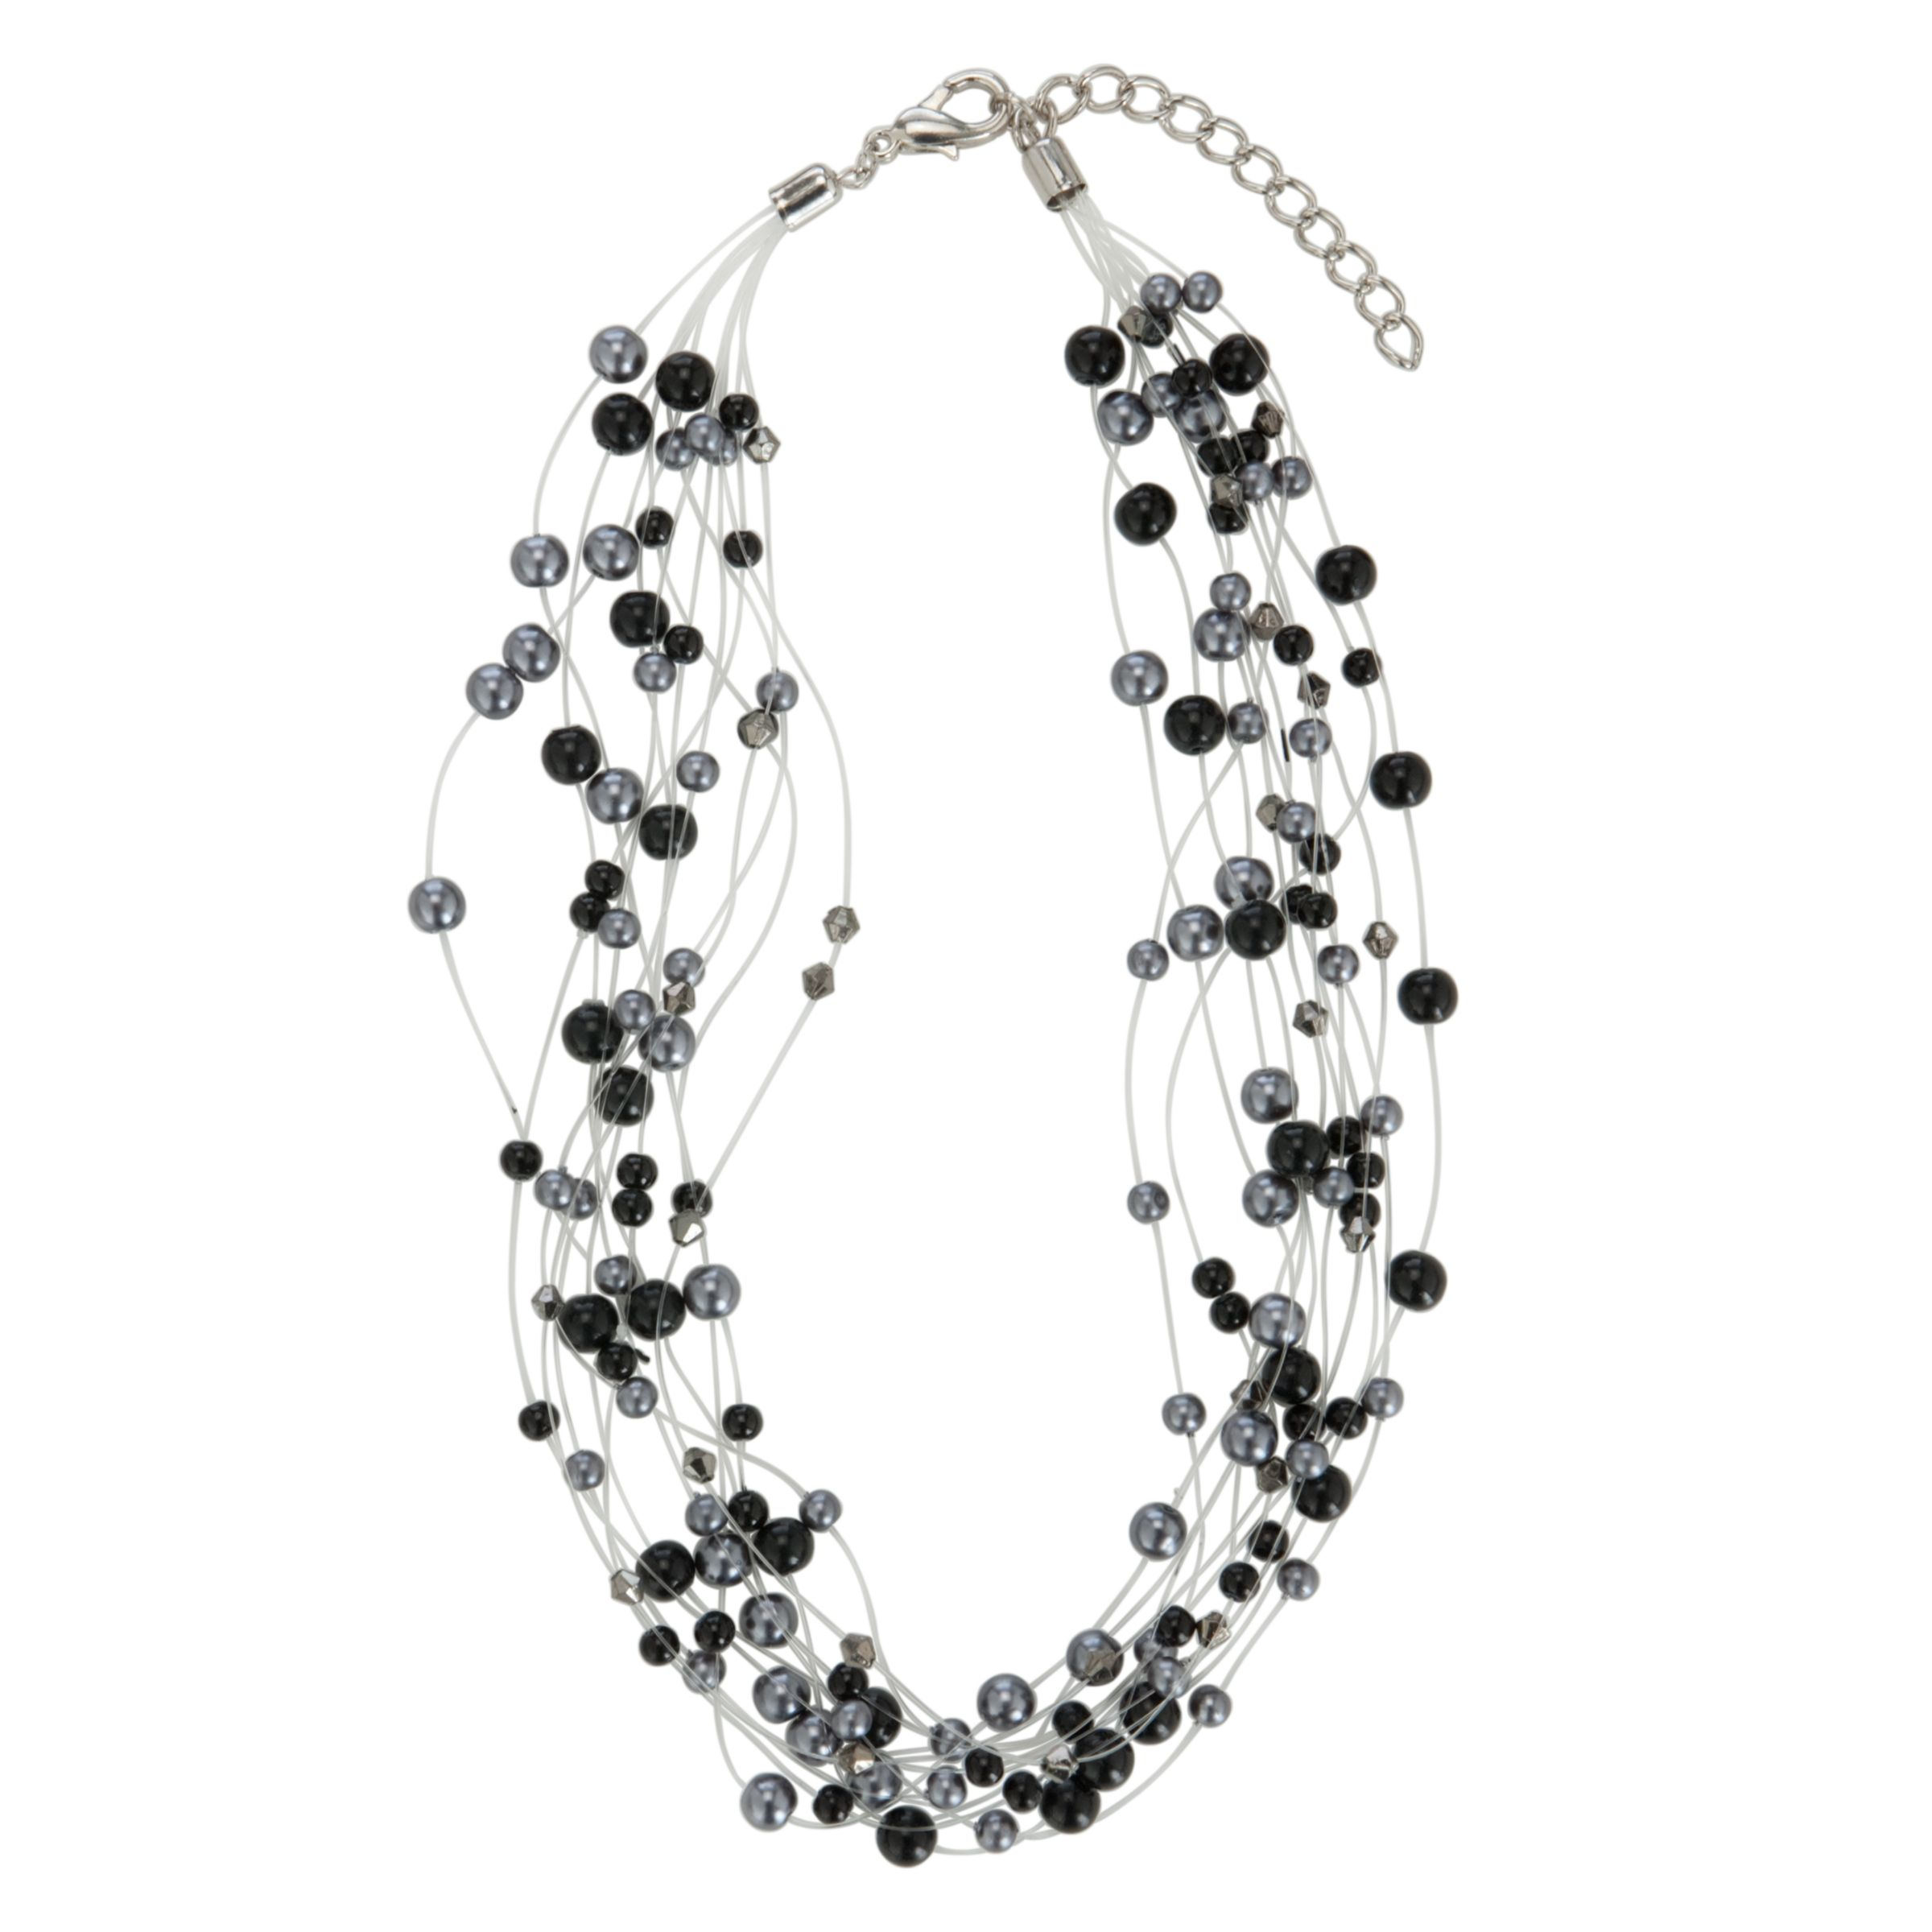 John Lewis Women Illusion Hermatite Pearls Necklace, Black